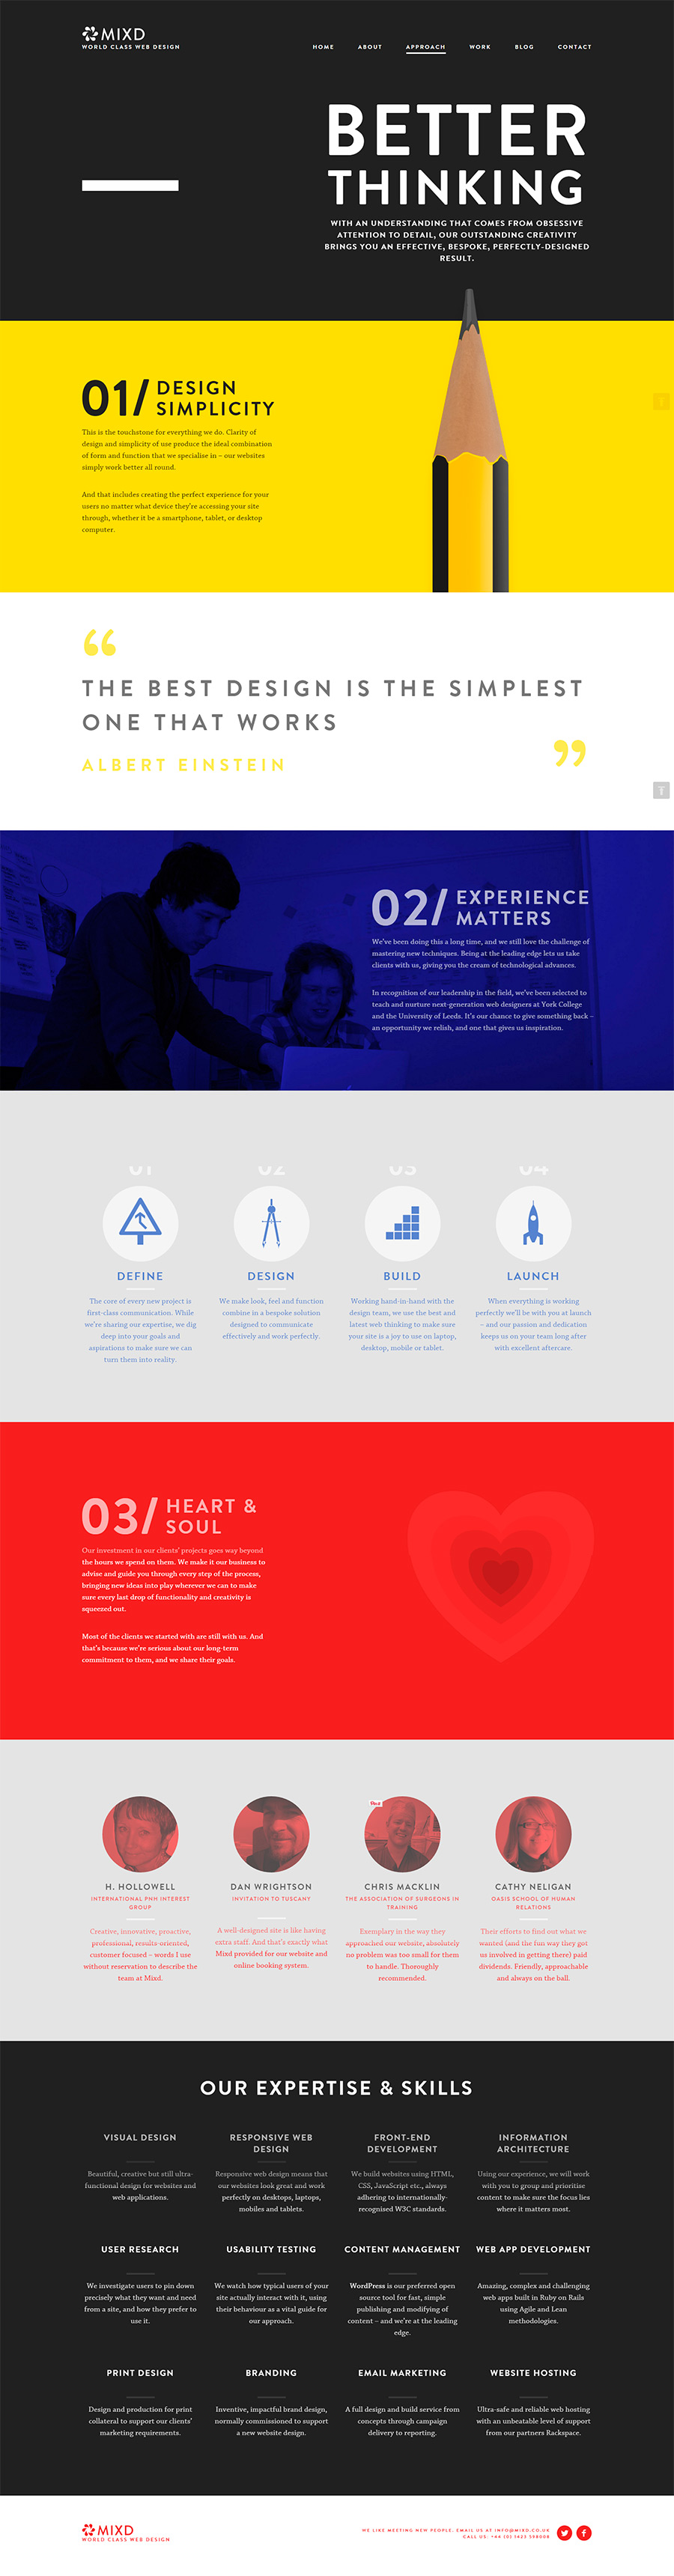 The Mixd - Inspiración web design